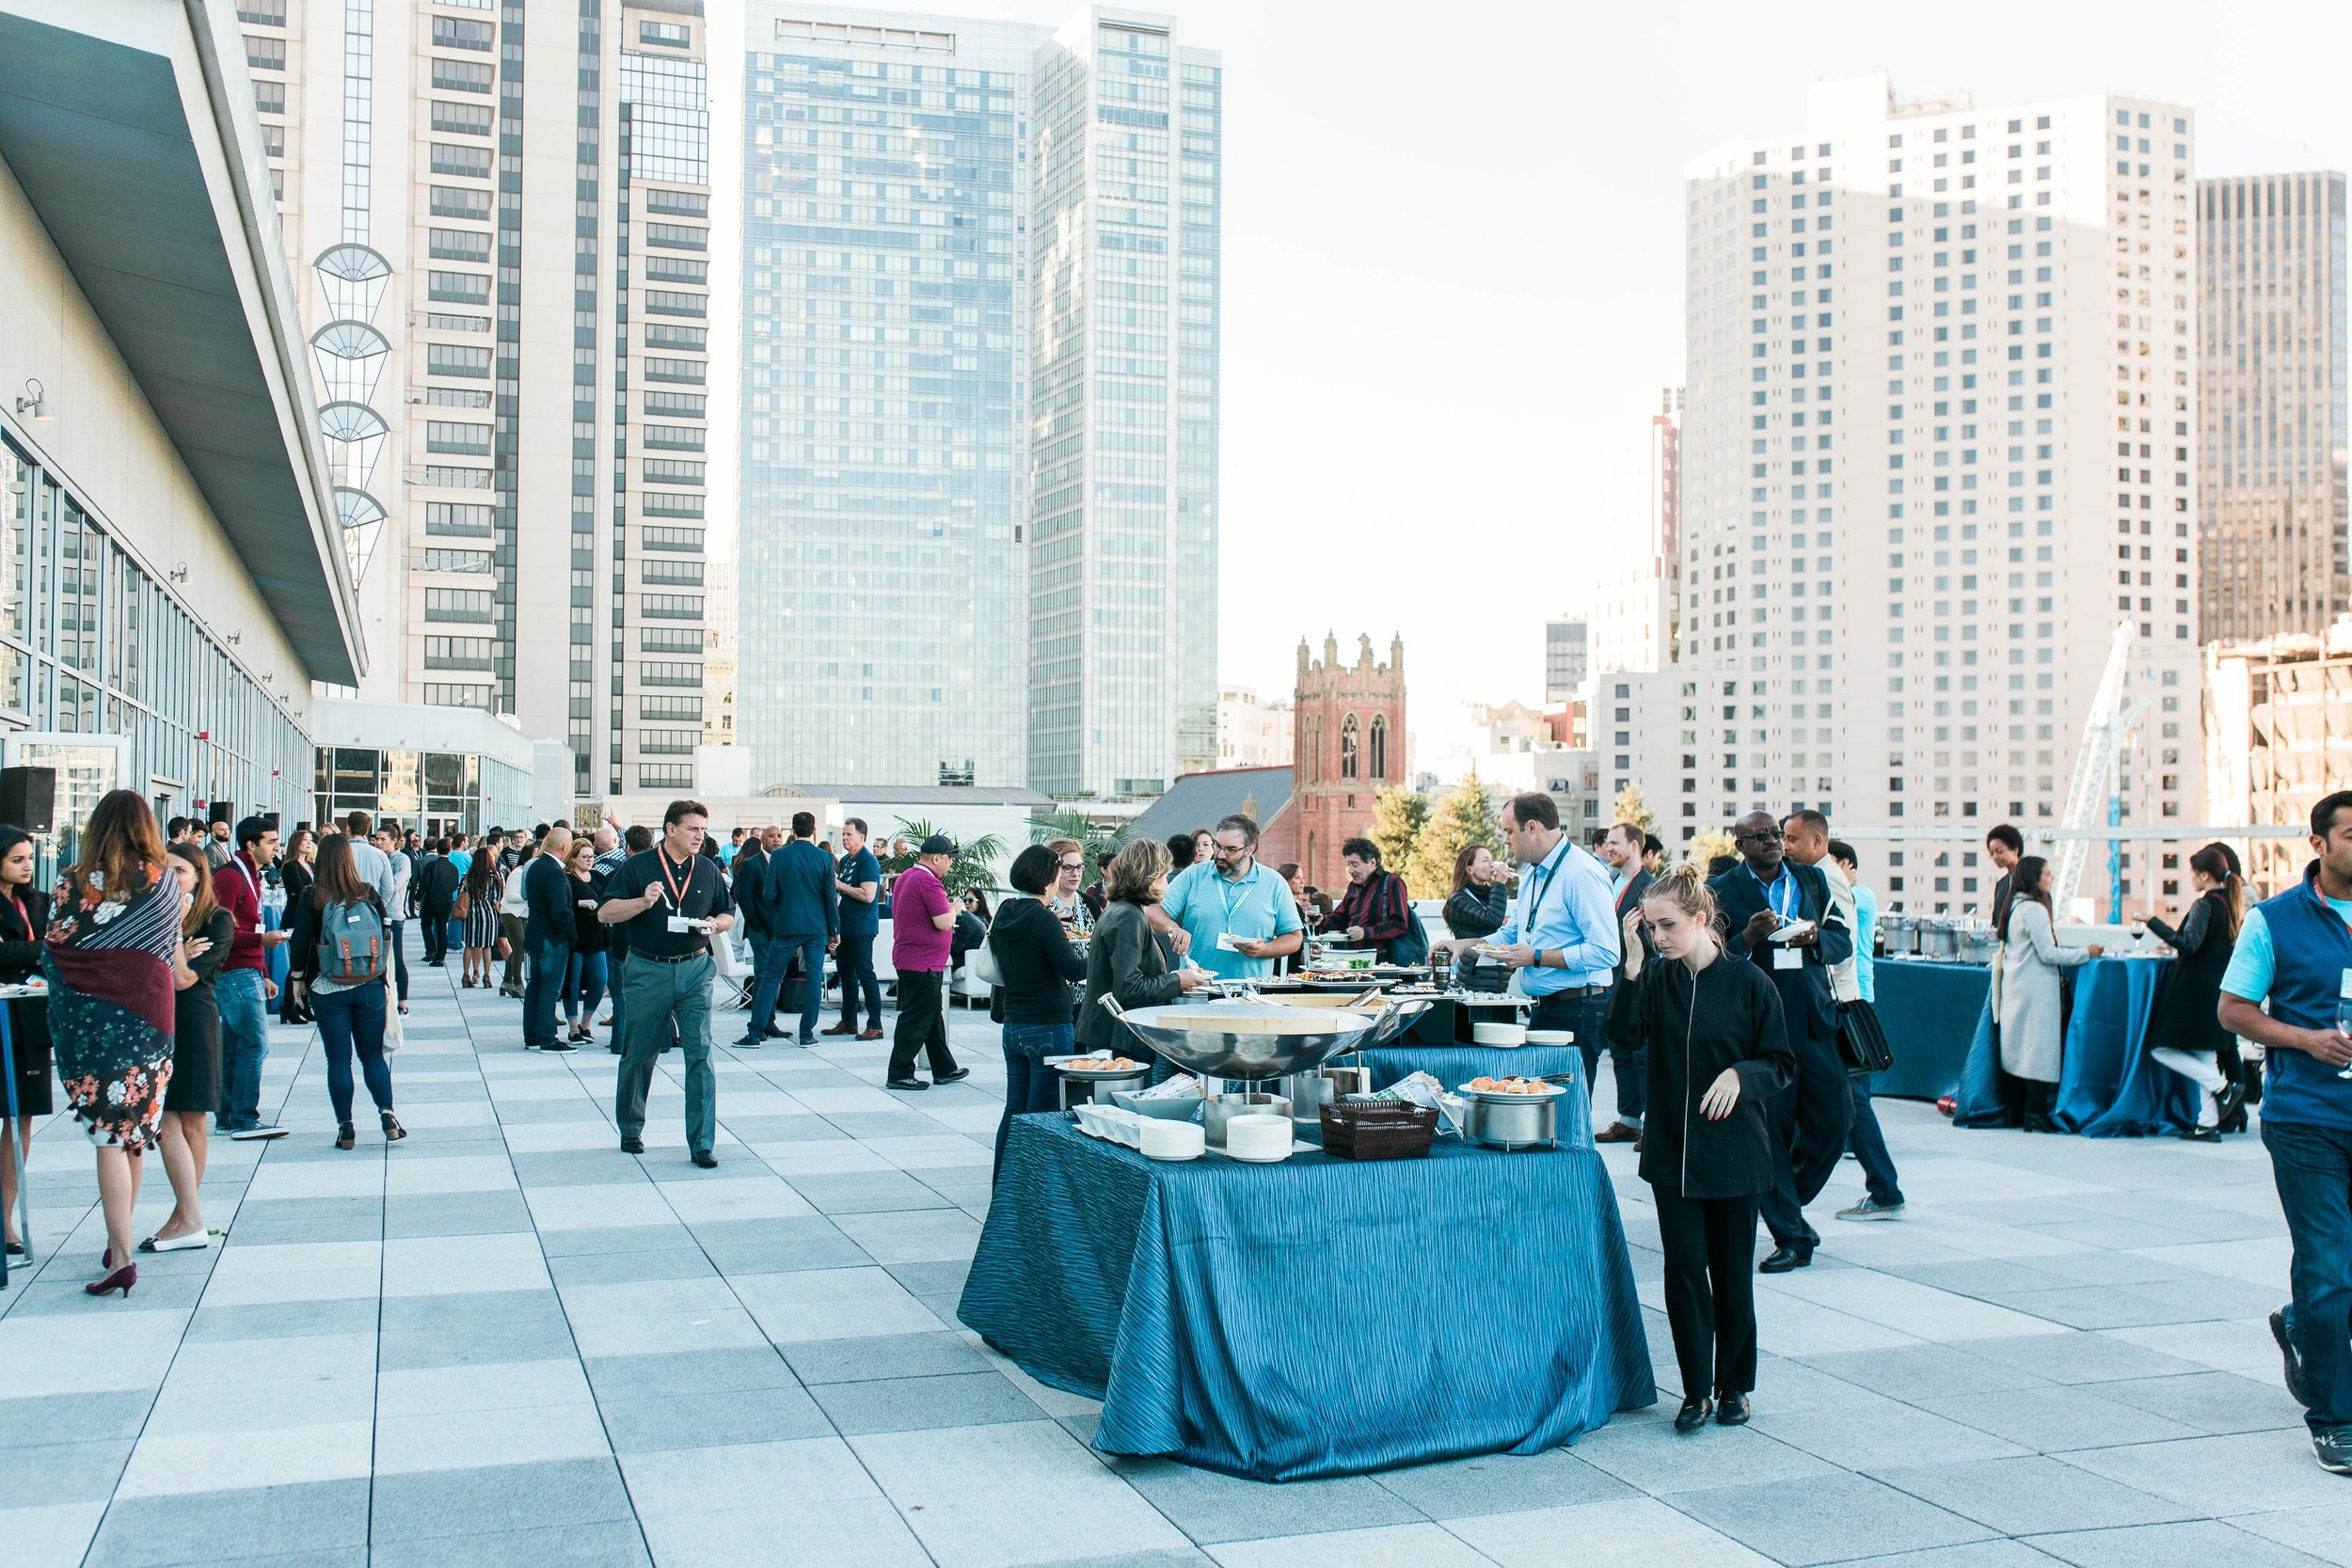 Best-Corporate-Venue-San-Francisco-City-View-Metreon-Event-Photographer-SF-by-JBJ-PIctures (19).jpg